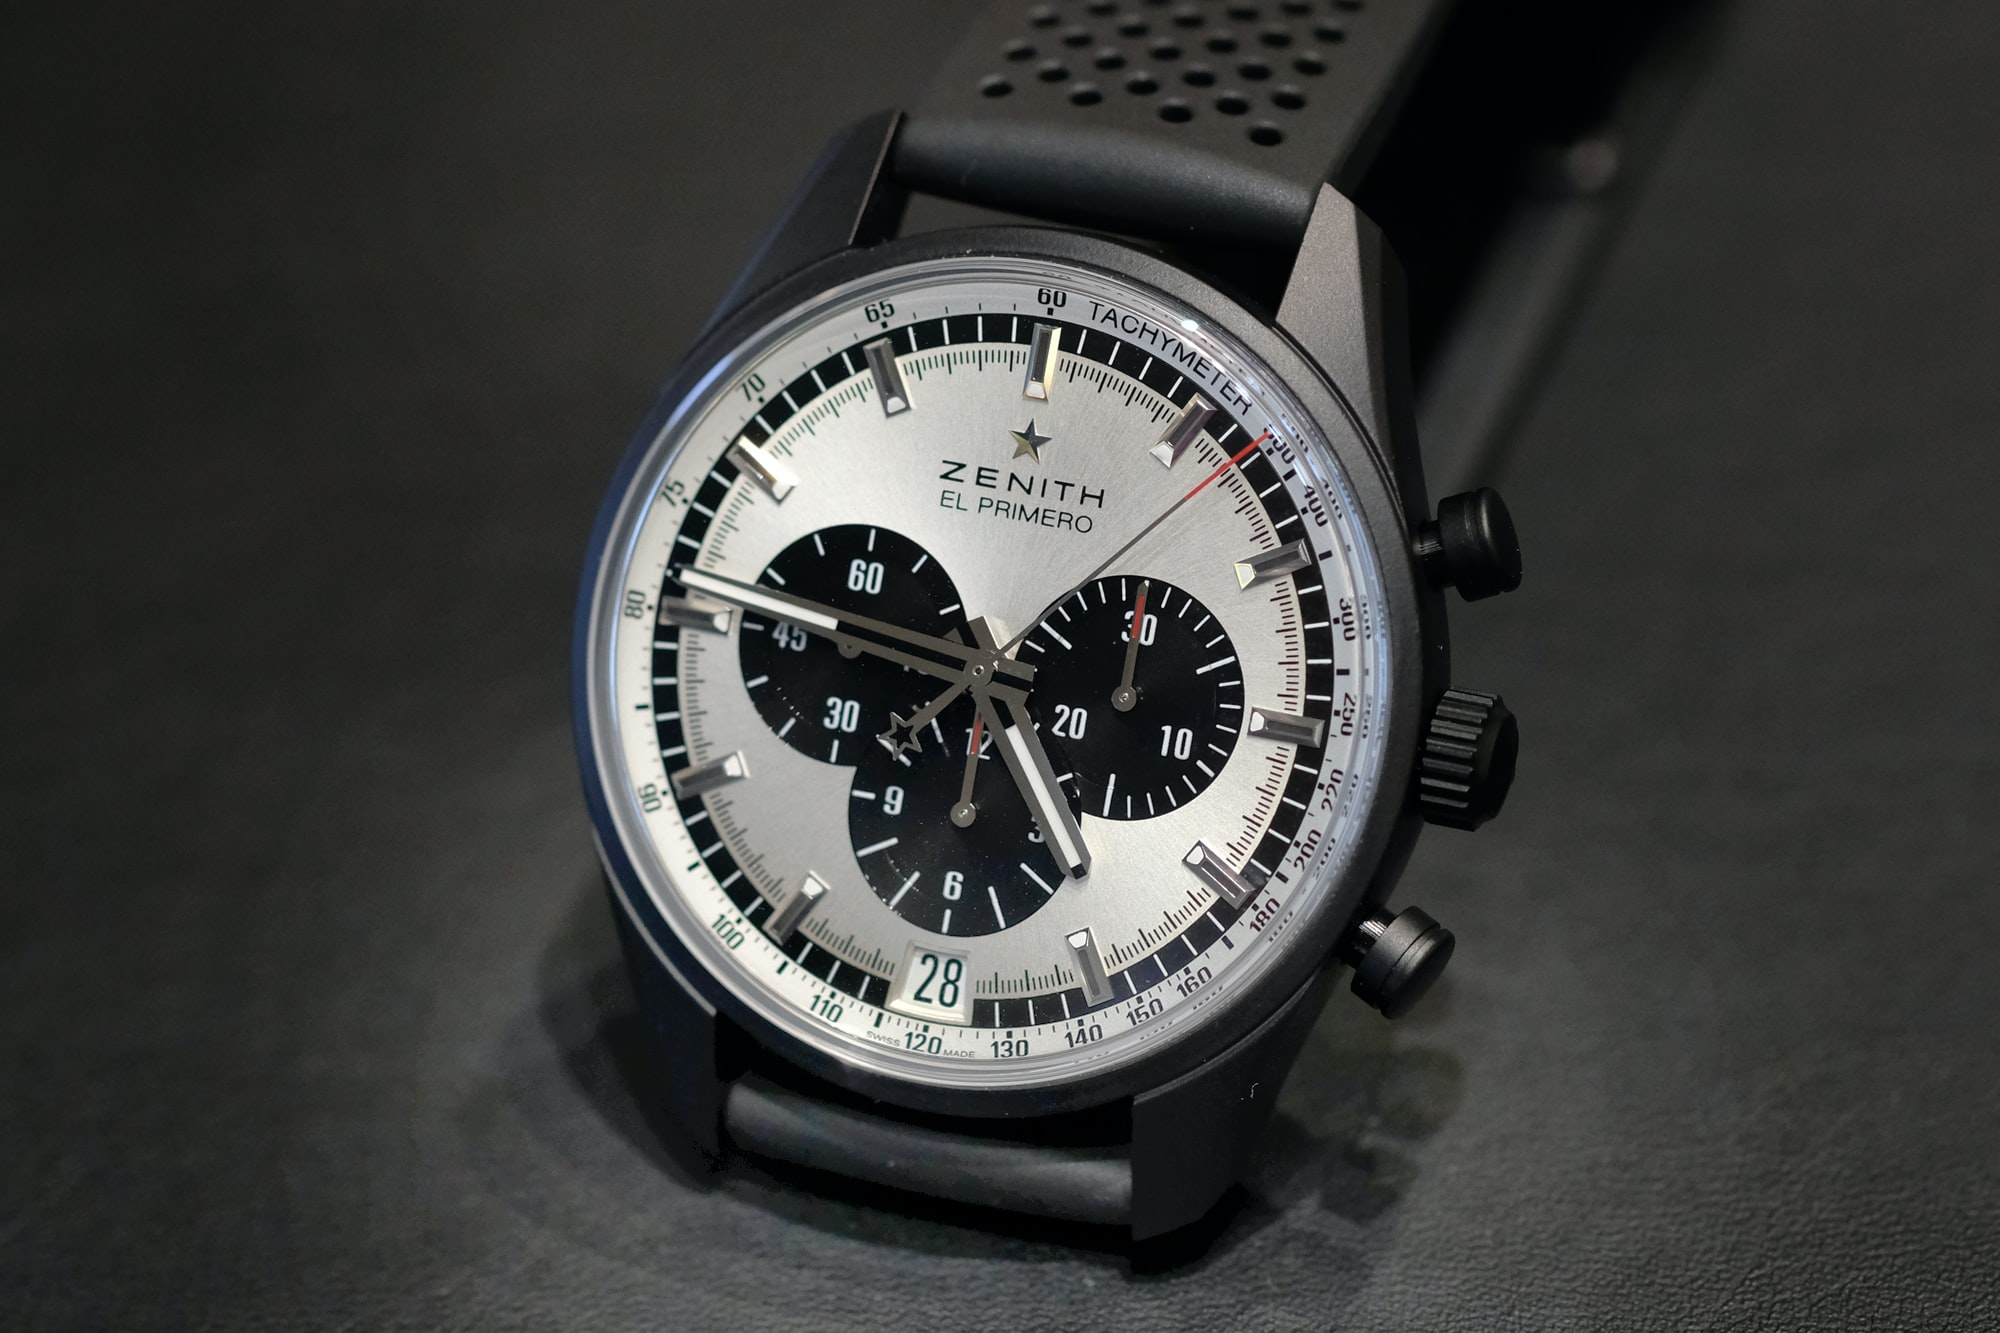 Zenith El Primero Range Rover Introducing: The Zenith El Primero 36,000 vph, Or The Return Of The Panda (Live Pics + Details) Introducing: The Zenith El Primero 36,000 vph, Or The Return Of The Panda (Live Pics + Details) zenith 03